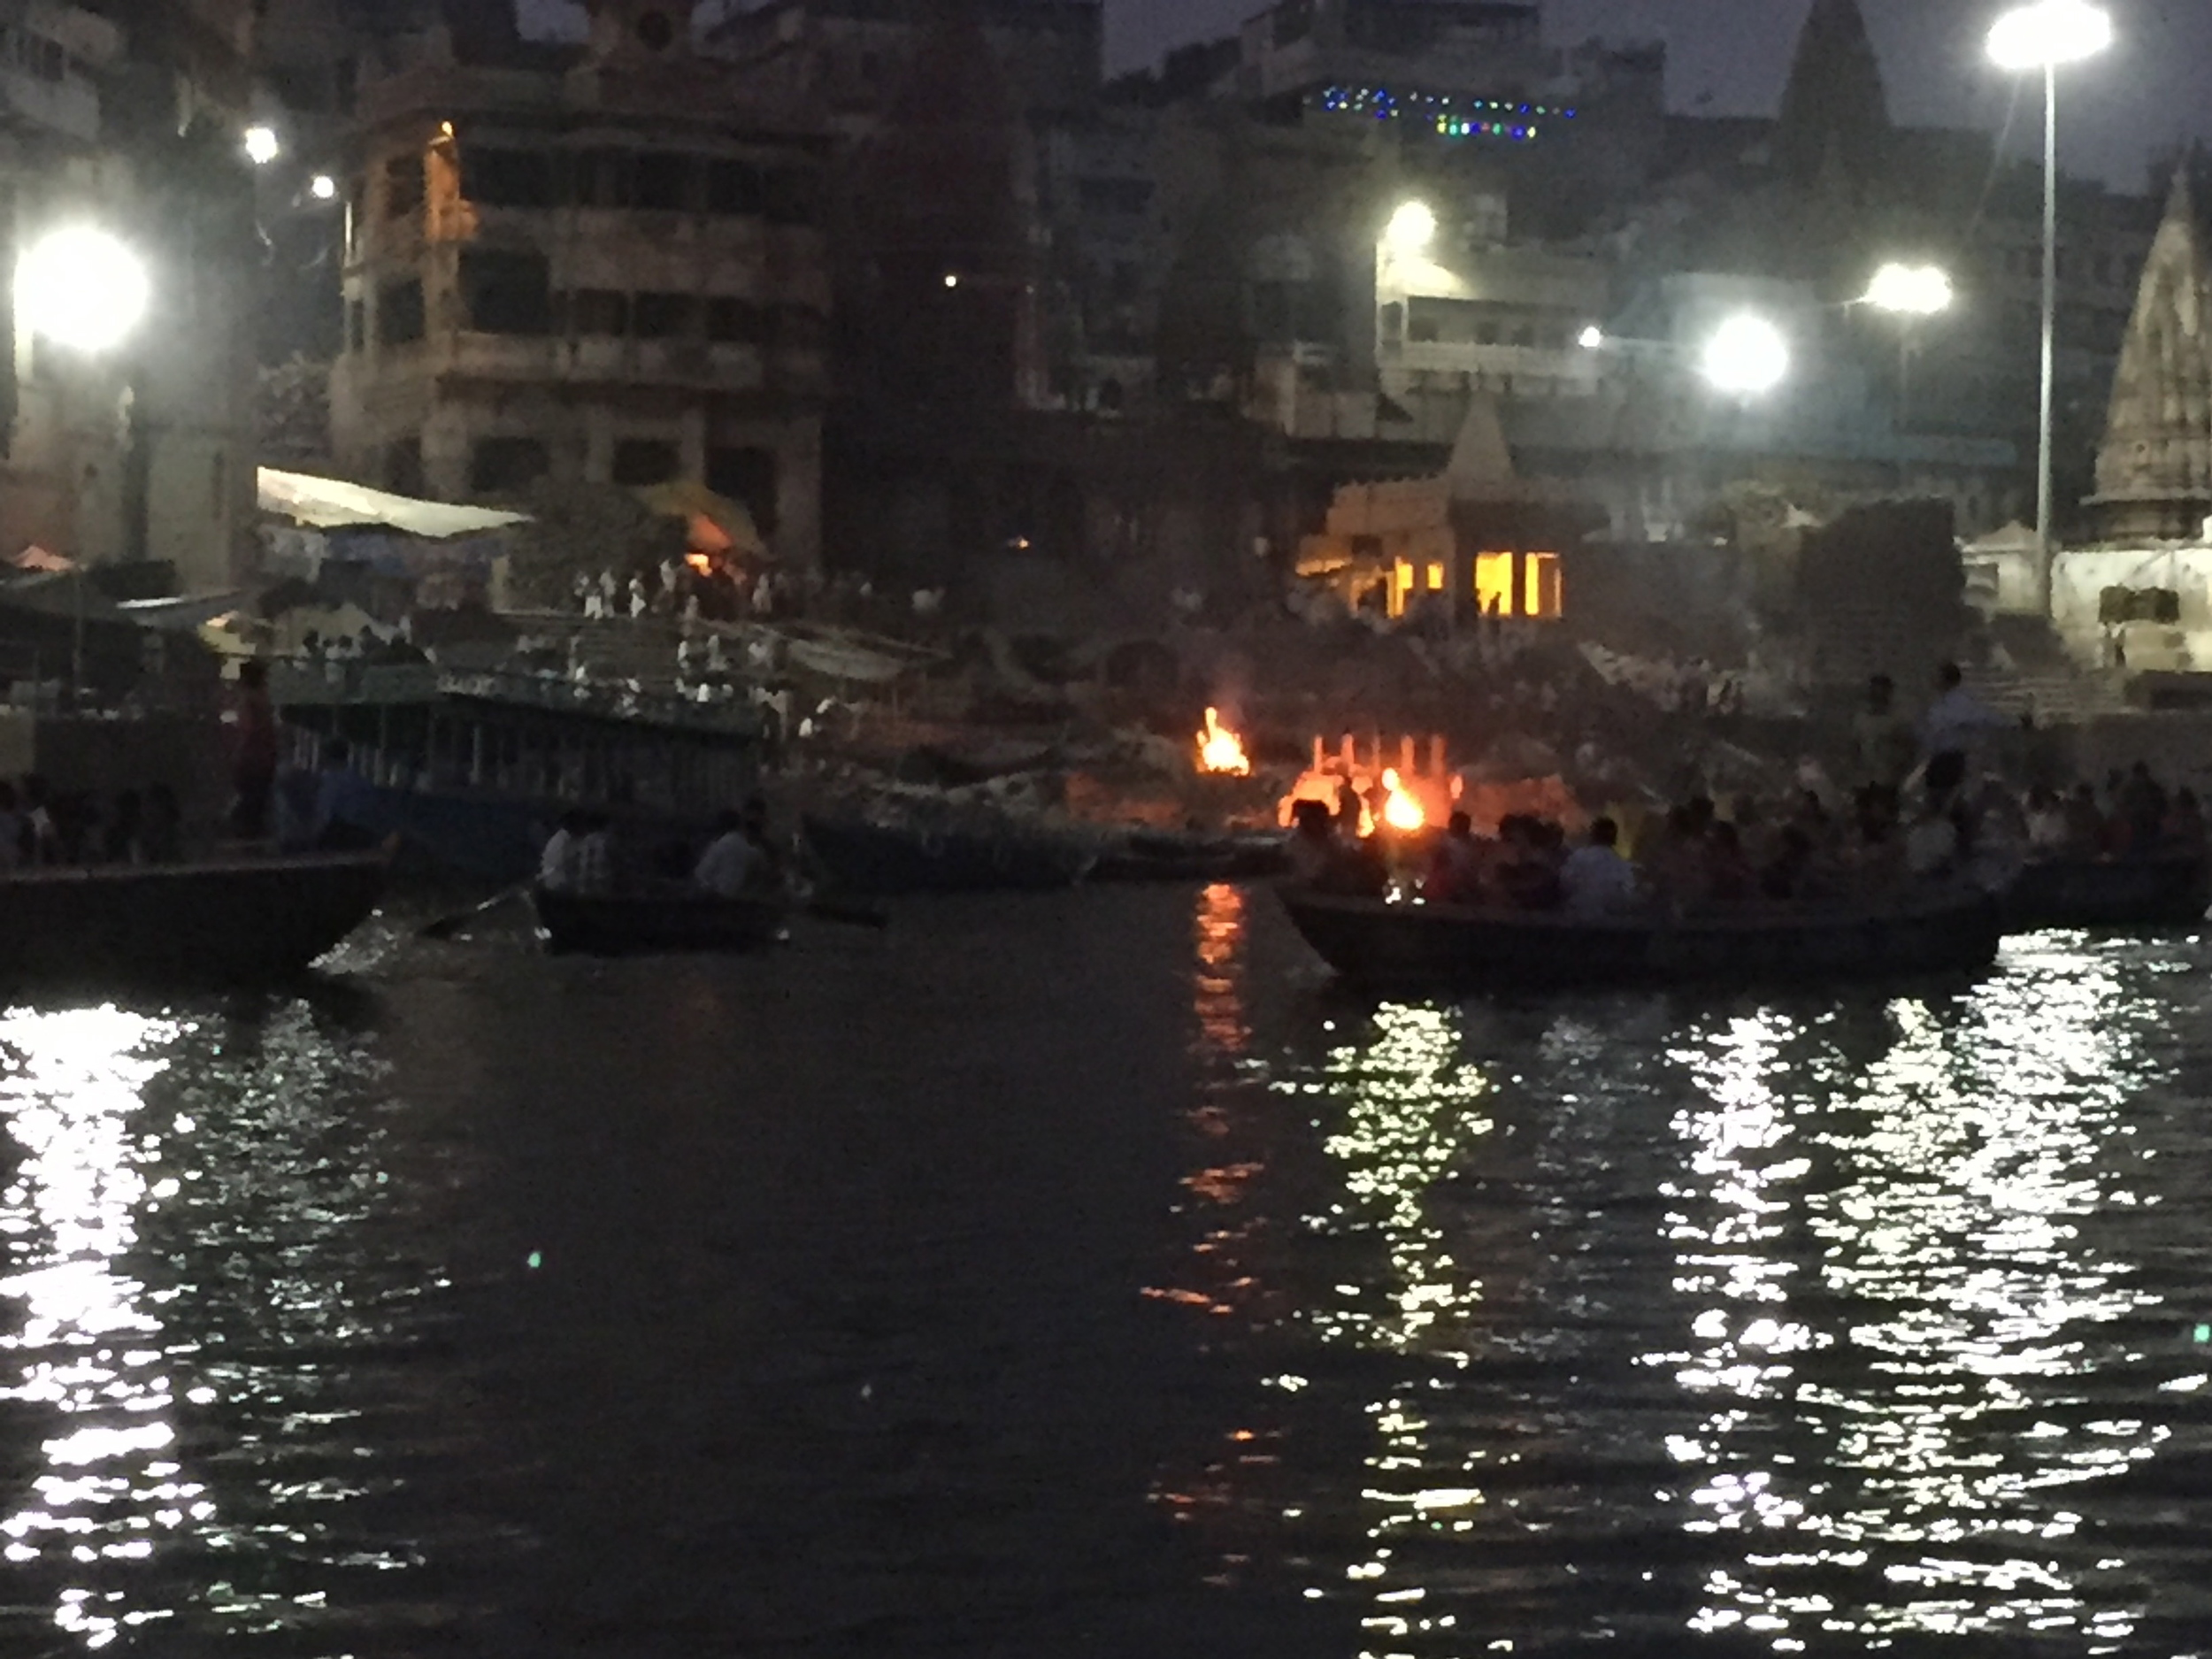 Our boat approaches an ongoing cremation as the sun sets. Bodies are immersed in the waters of the Ganges before cremation. At the same time, pilgrims visiting the river bathe in the waters.